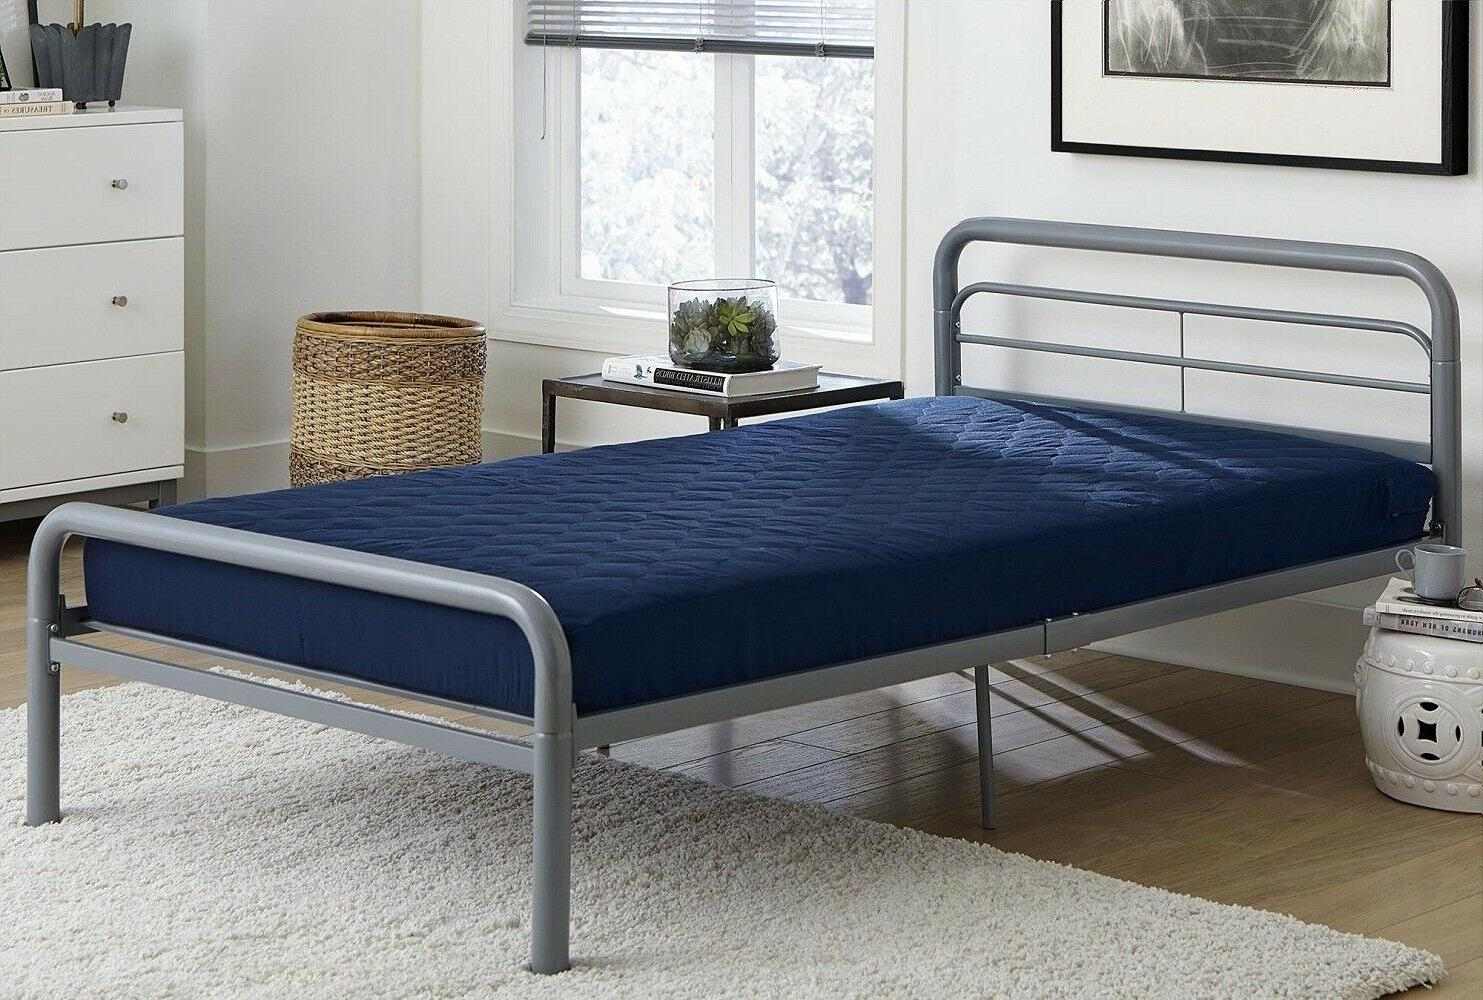 6 Bed Mattress And Polyester Navy